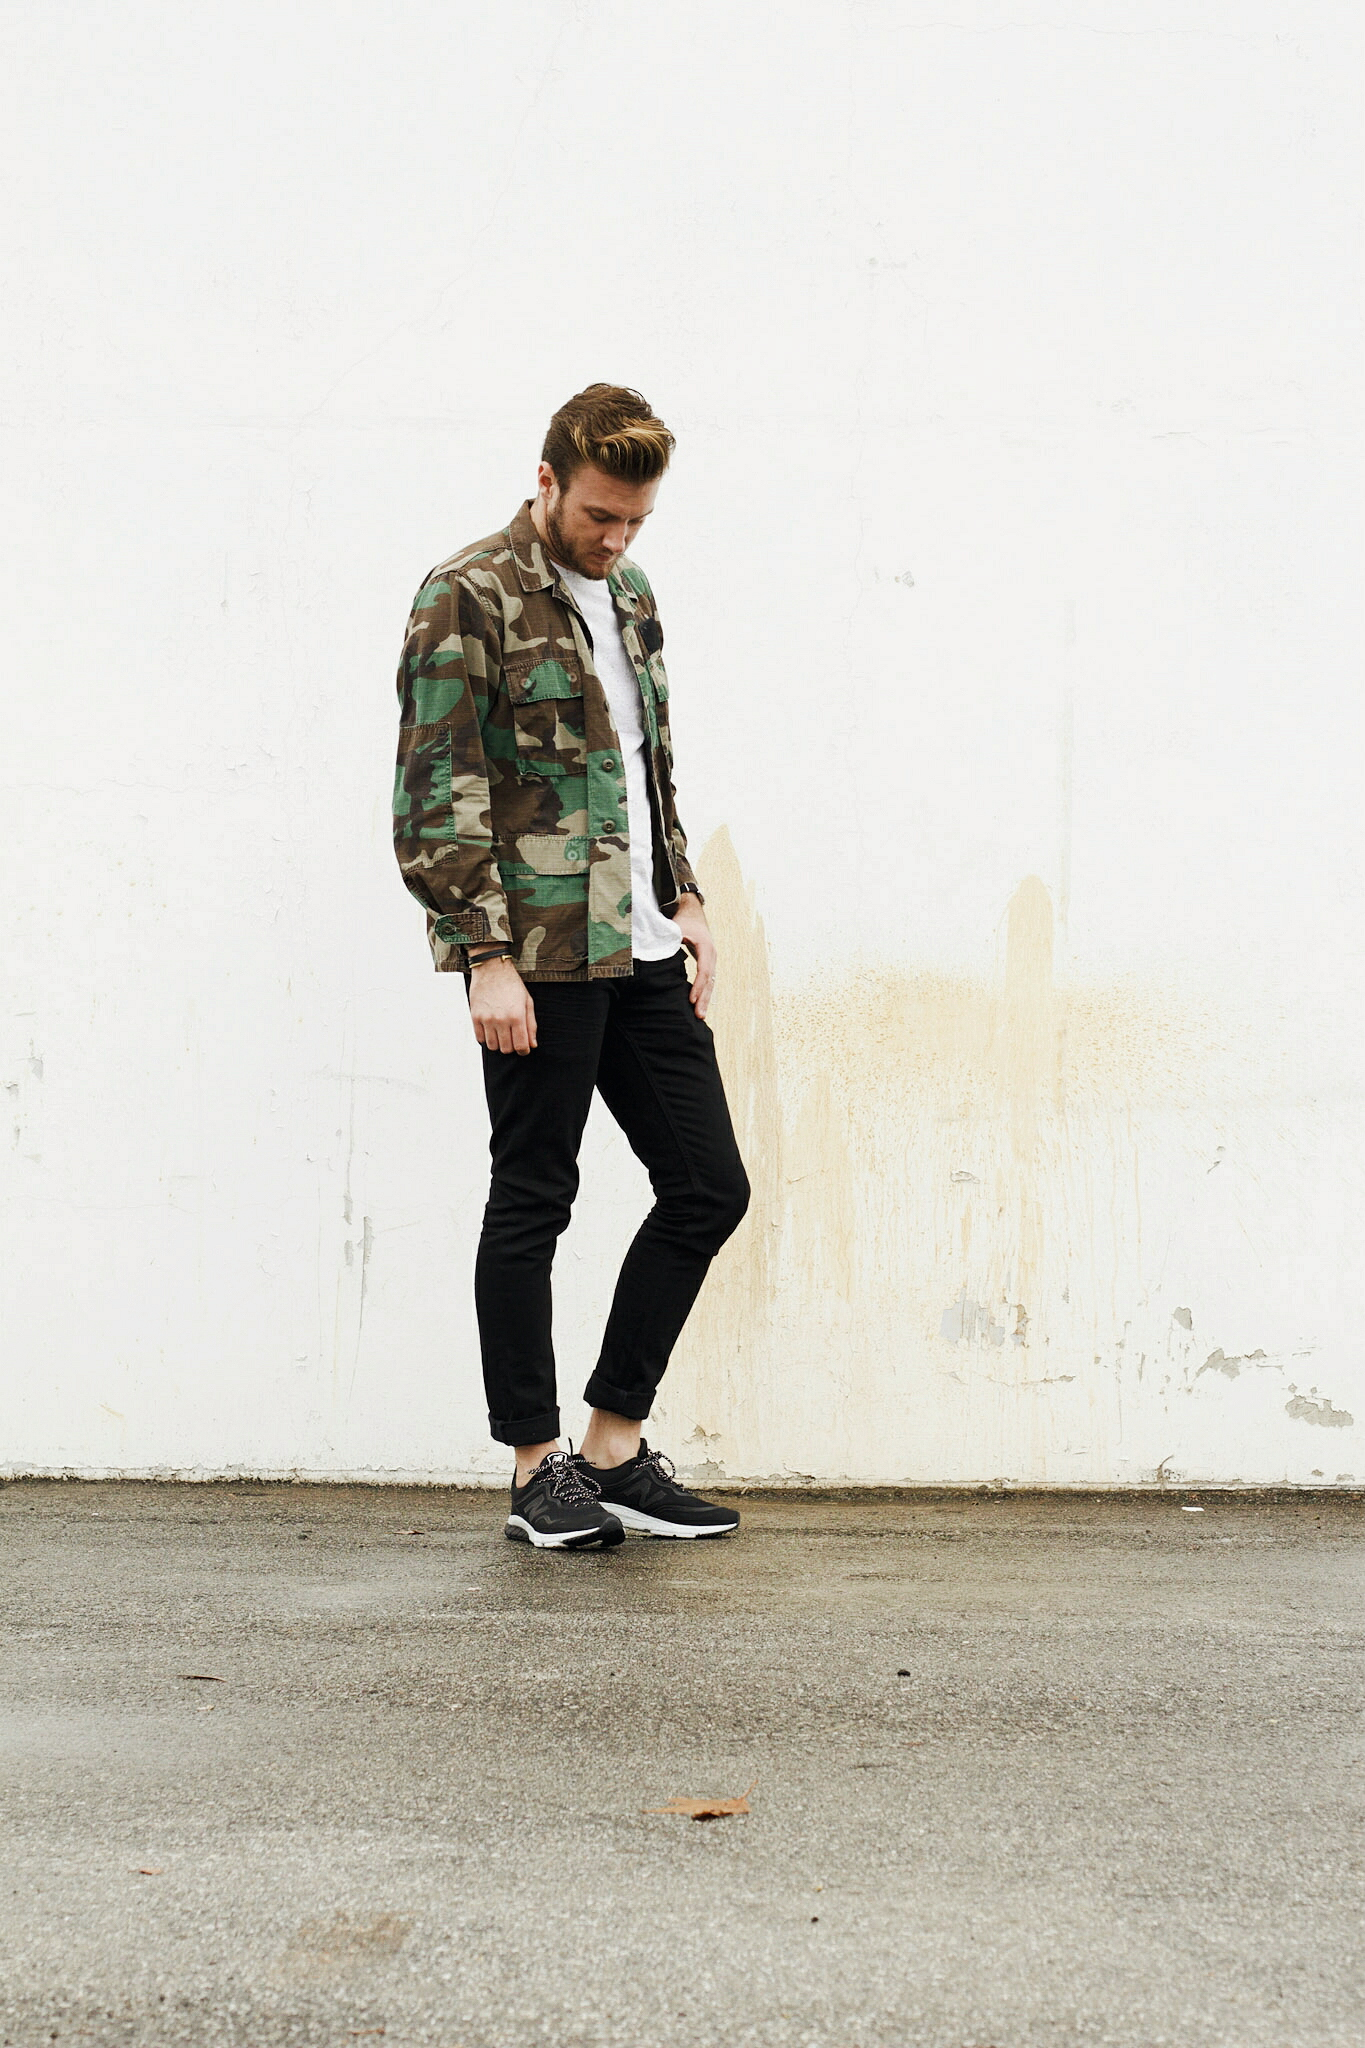 Vintage Camo Jacket and Sneakers 7